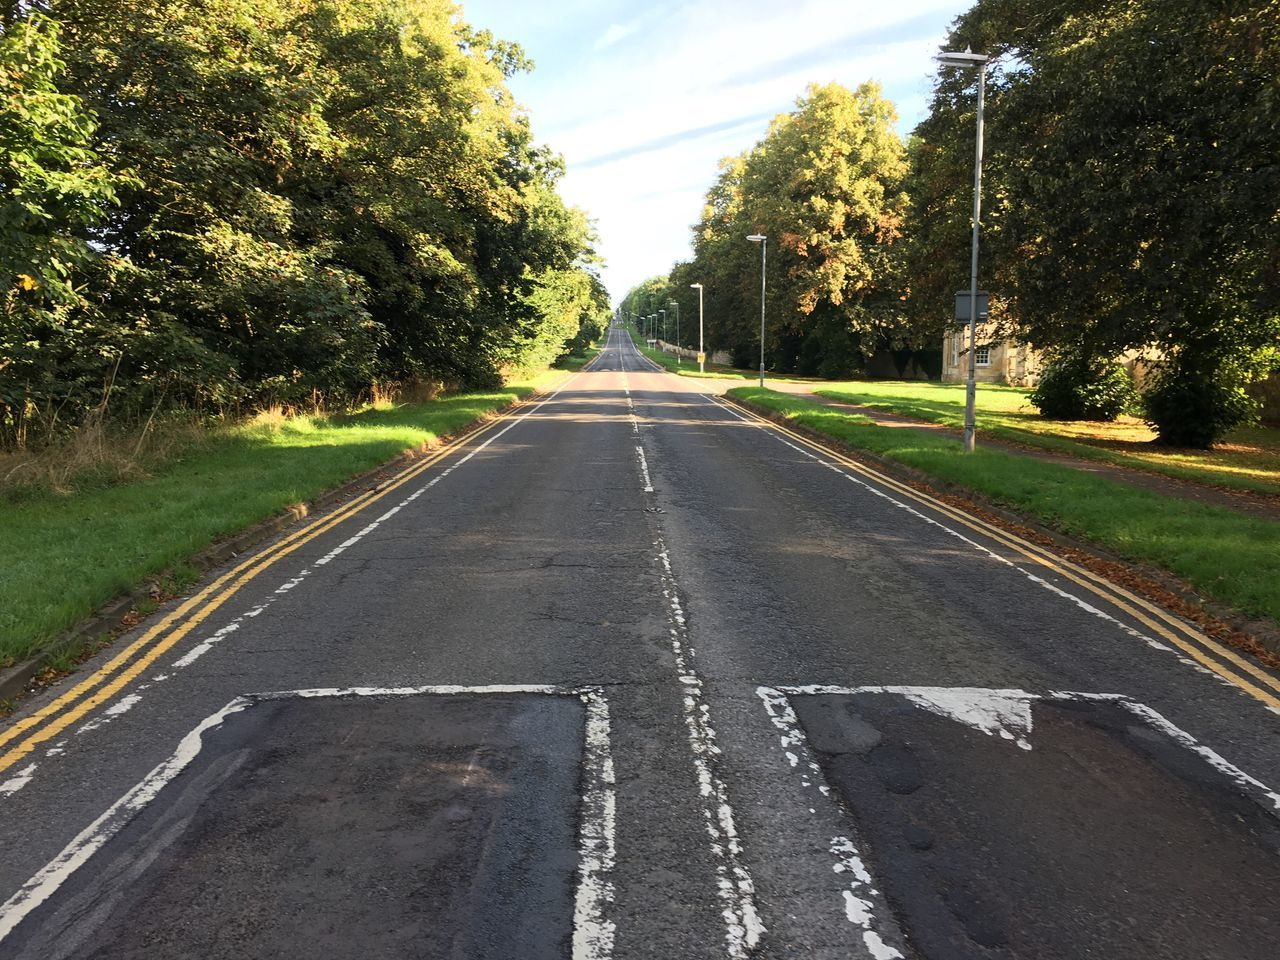 Watling Street Roman Road Tree Transportation Road Marking Road The Way Forward Diminishing Perspective Empty Empty Road Green Color Day Outdoors Growth Dividing Line Tranquil Scene Vanishing Point Nature Straight Scenics Towcester